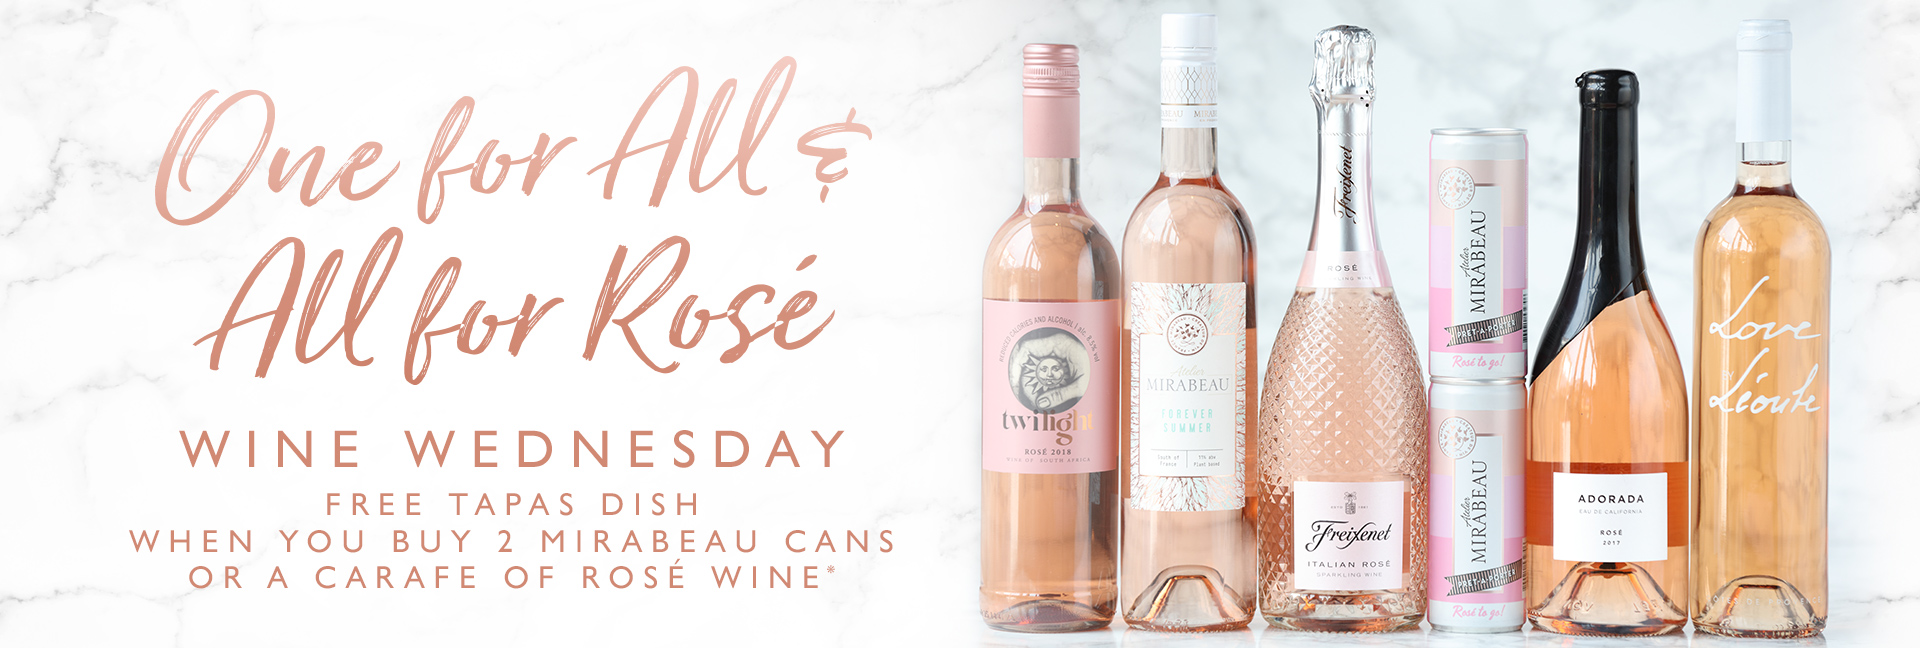 Wine Wednesday at All Bar One Windsor